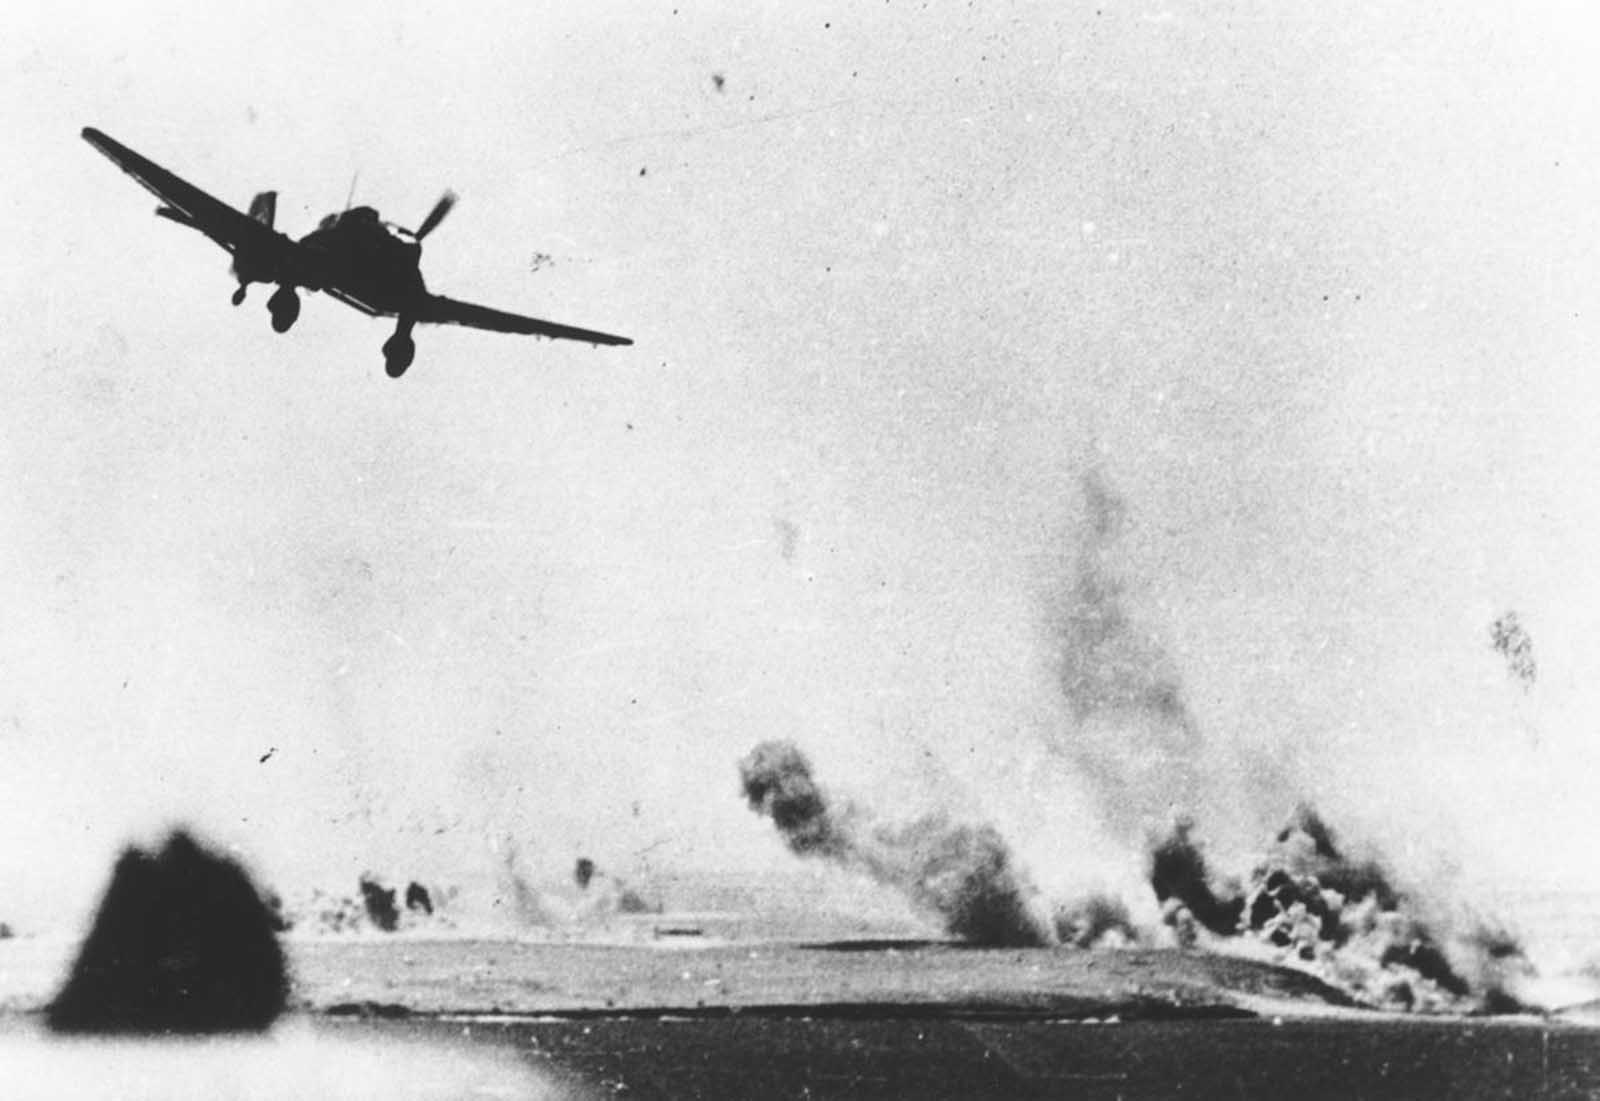 A German Junkers Ju 87 Stuka dive bomber attacking a British supply depot near Tobruk, Libya, in October of 1941.